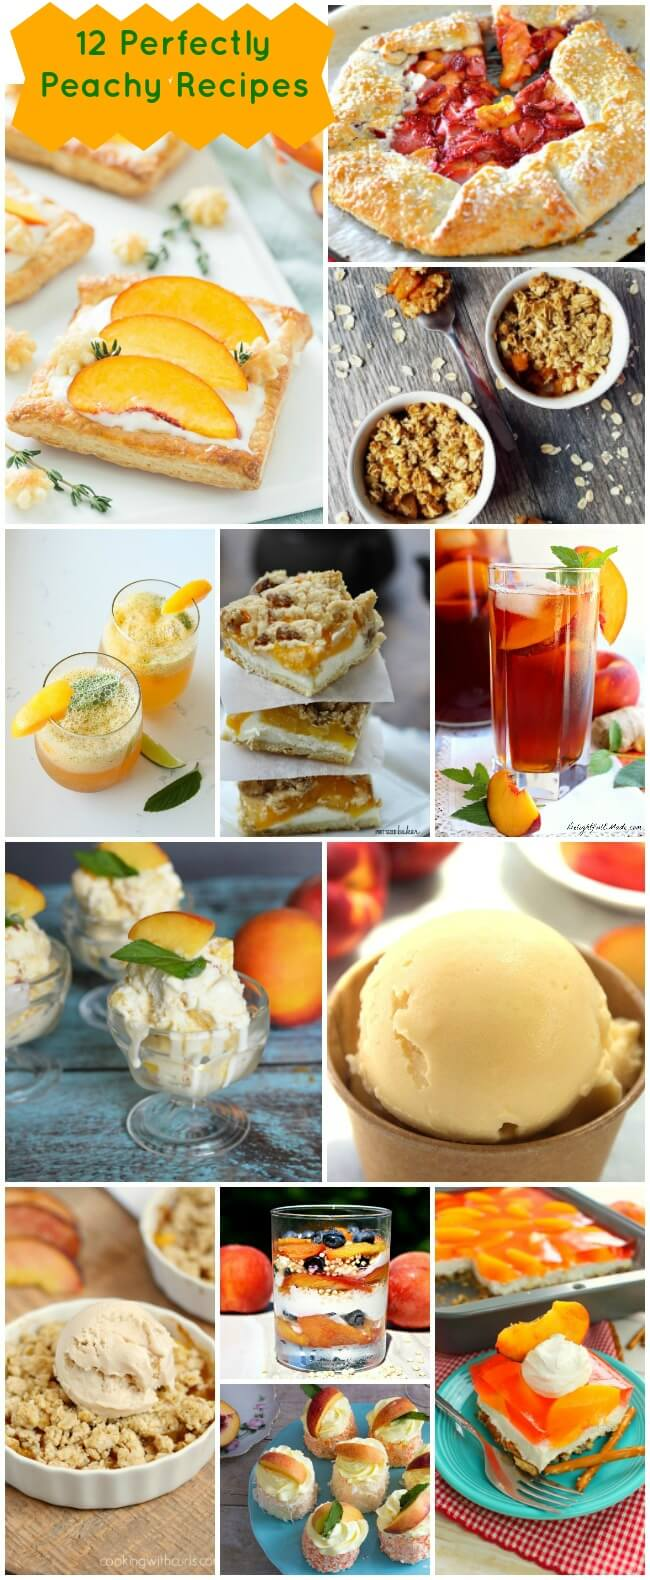 Enjoy 12 perfectly peachy recipes or breakfast, lunch, dinner and dessert. Add seasonal peaches to your pancakes, ice tea, and homemade ice cream.